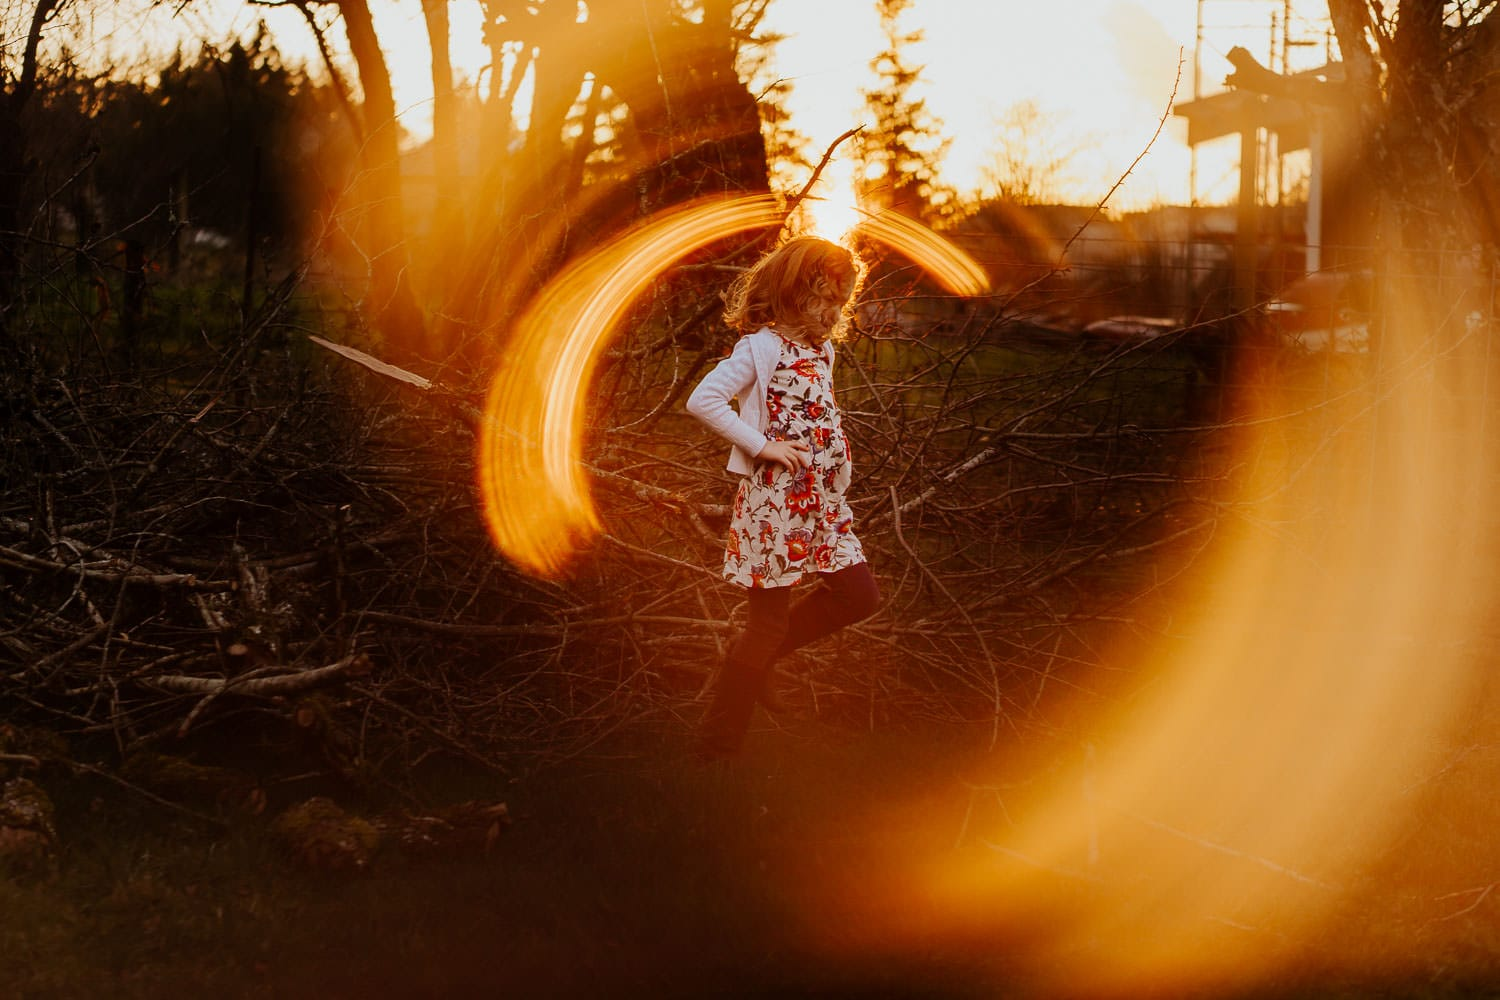 Little girl jumping in a dress - ring of fire photography tutorial